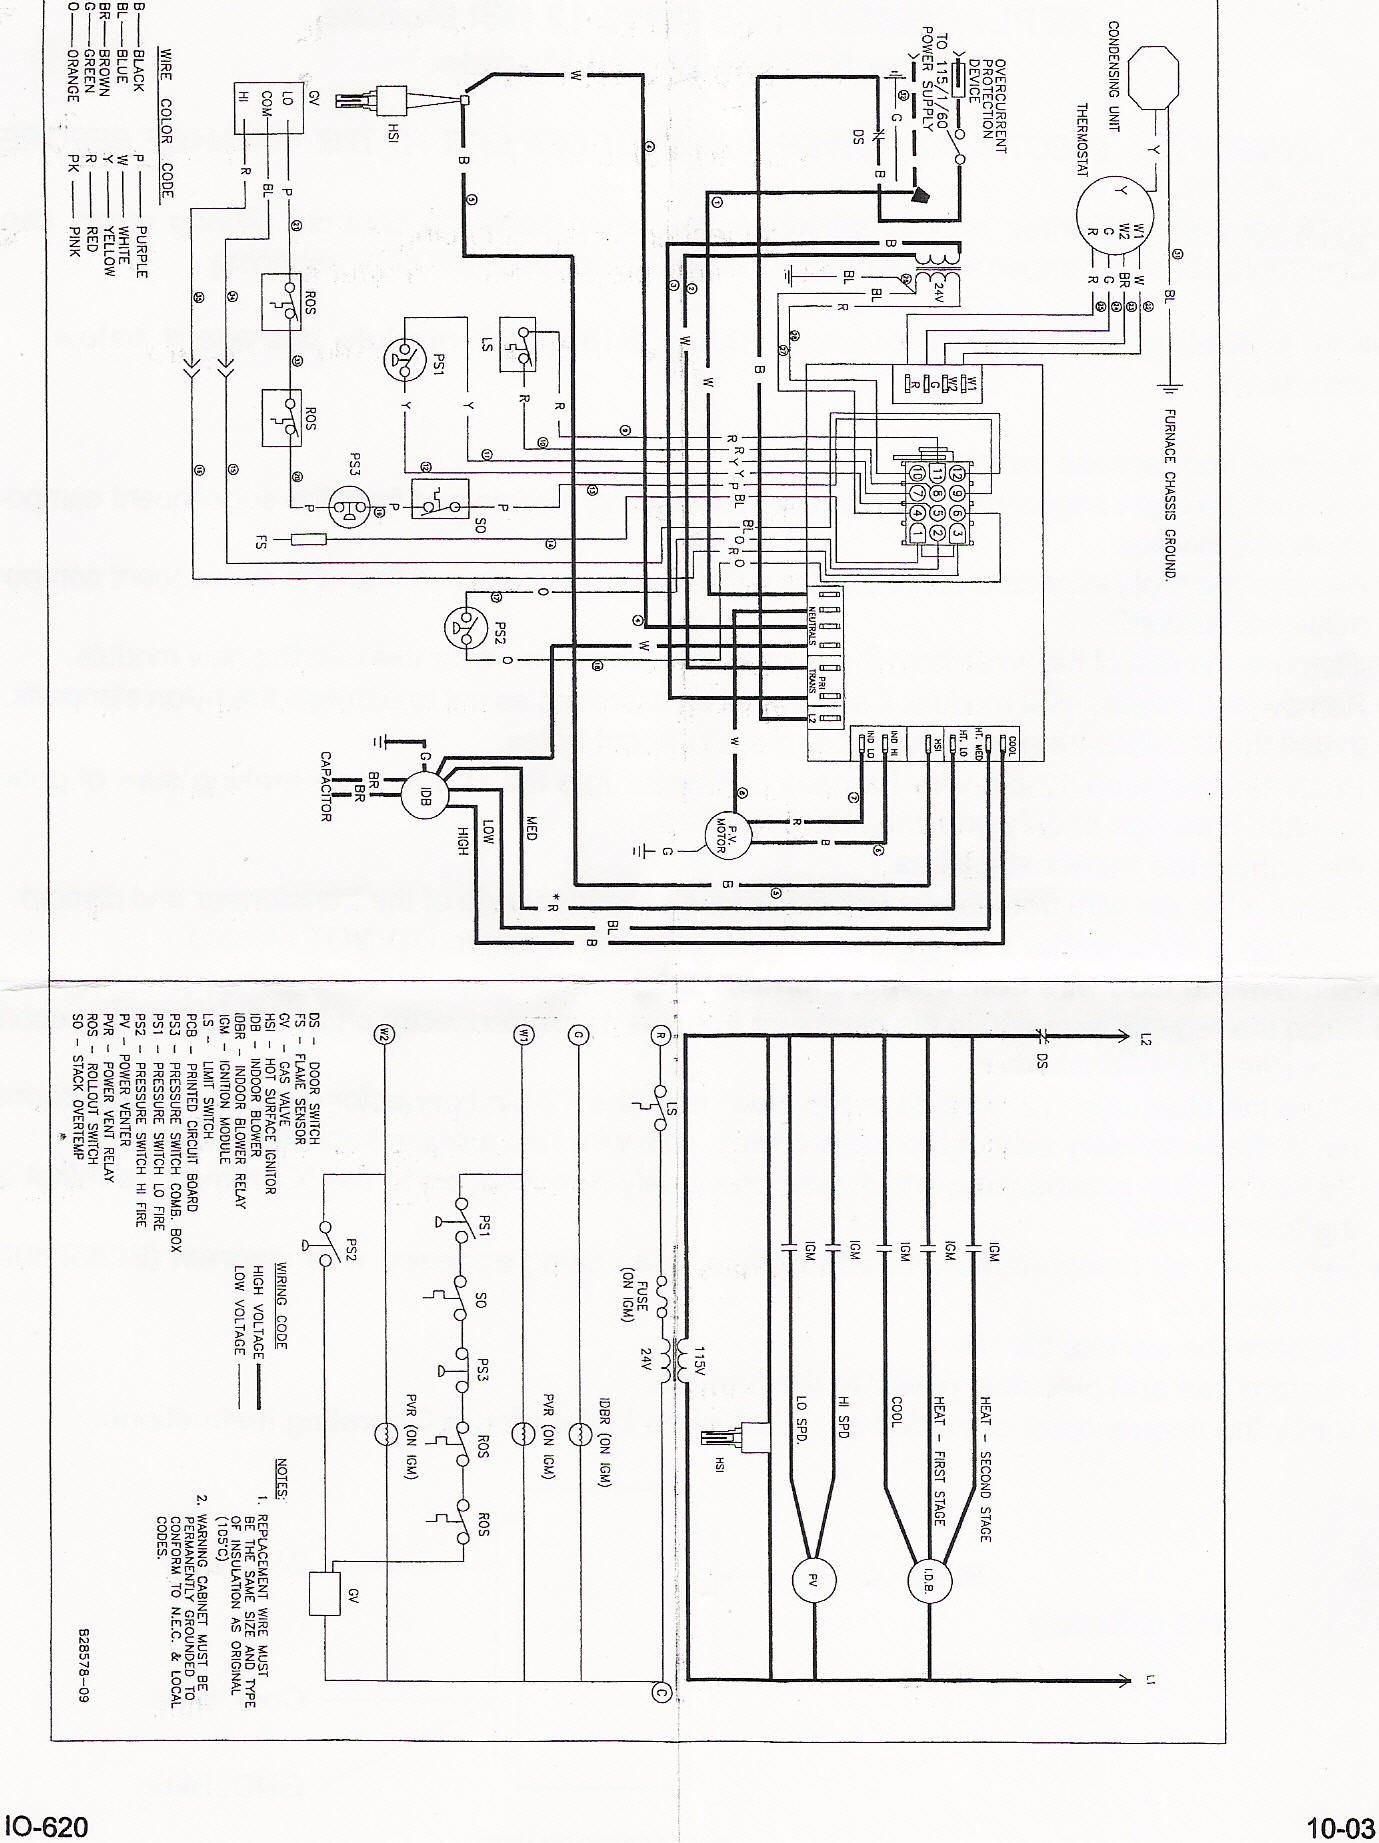 Janitrol Furnace Thermostat Wiring Diagram